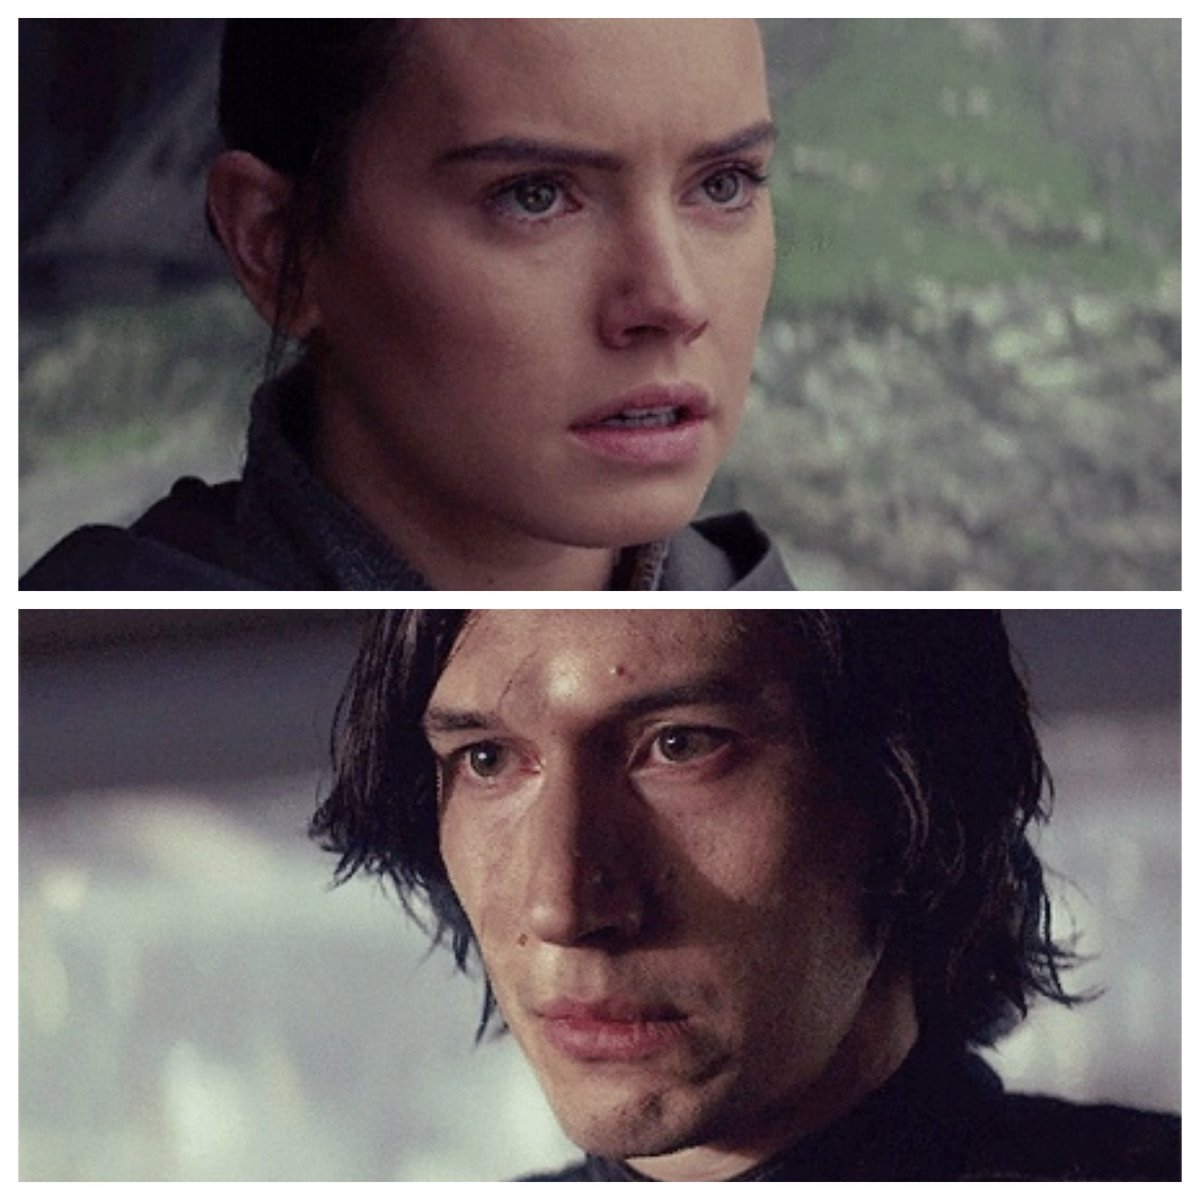 REYLO_ARG on Twitter: